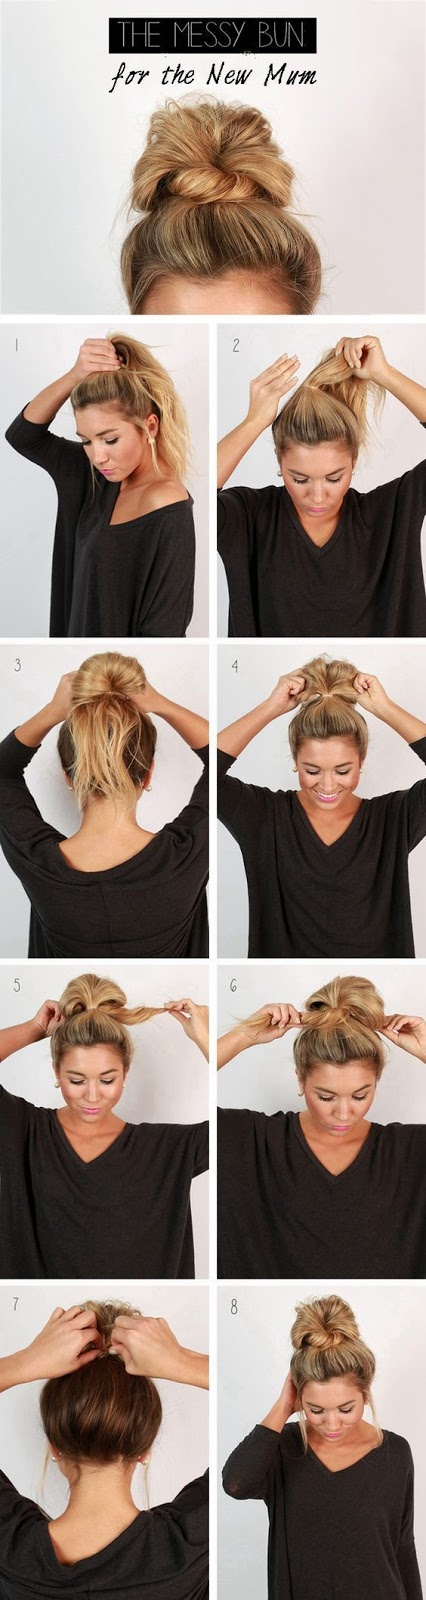 Hairstyles You Can Make in Less Than 2 Mins